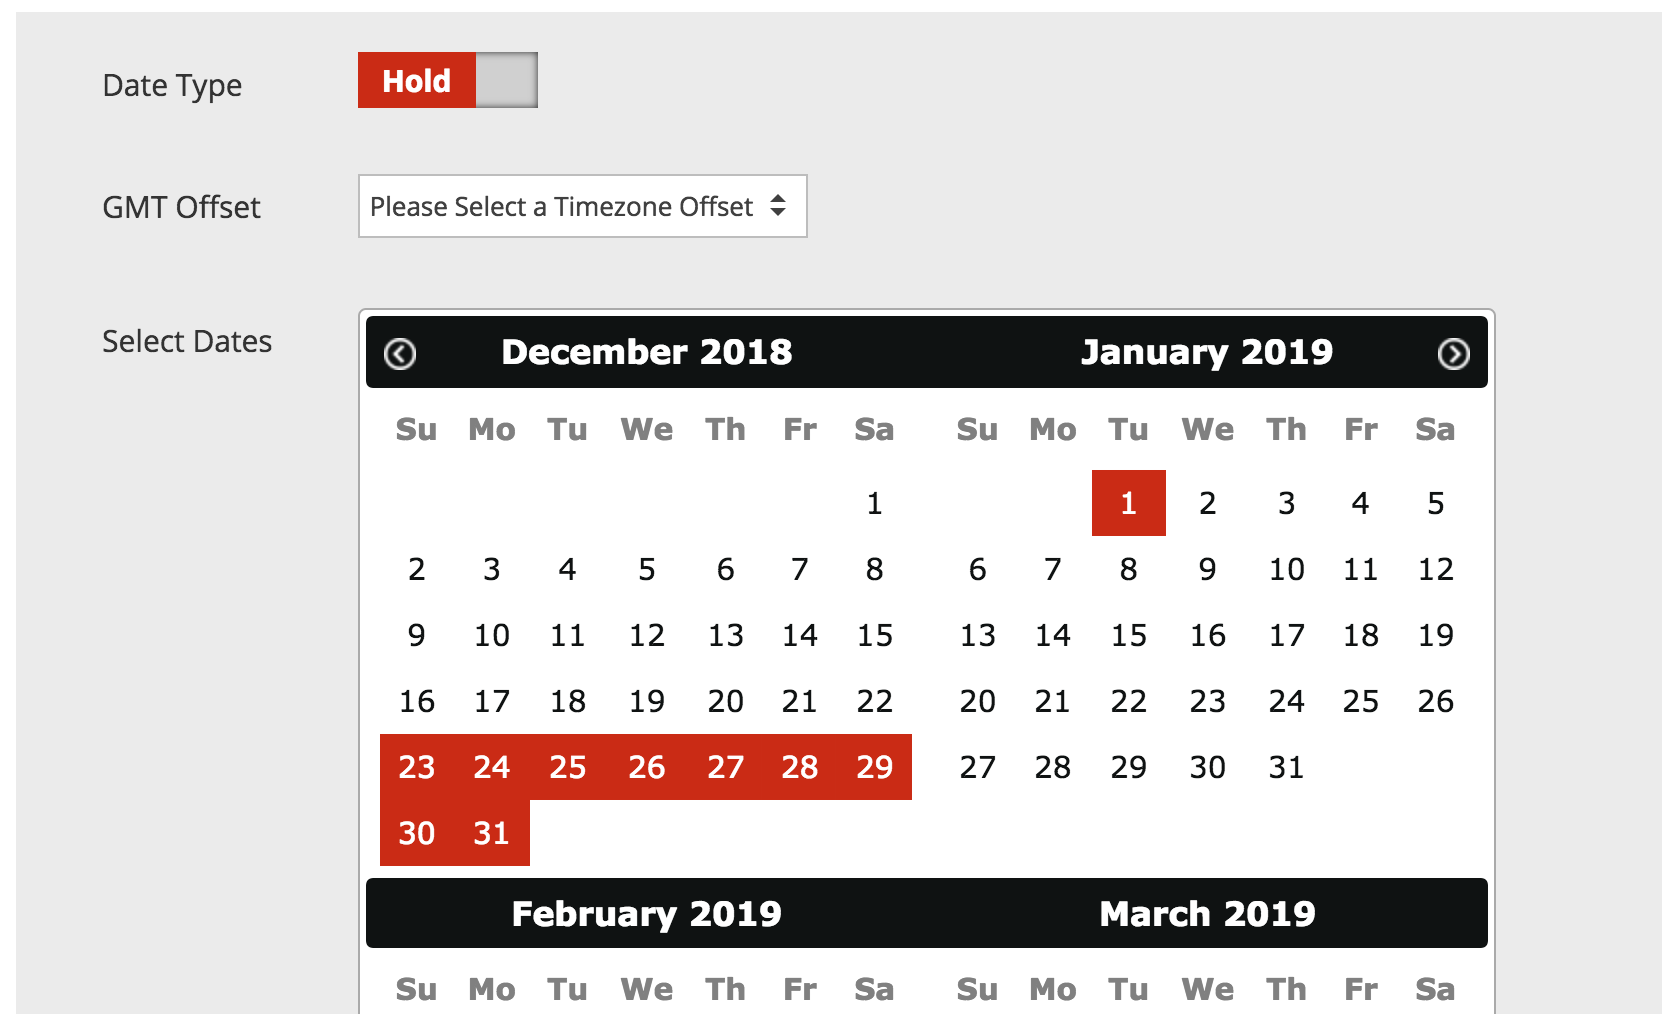 Note: You must click on each date individually. For example, if you want to HOLD the campaign from December 23 through January 1, click on each date you want it held.